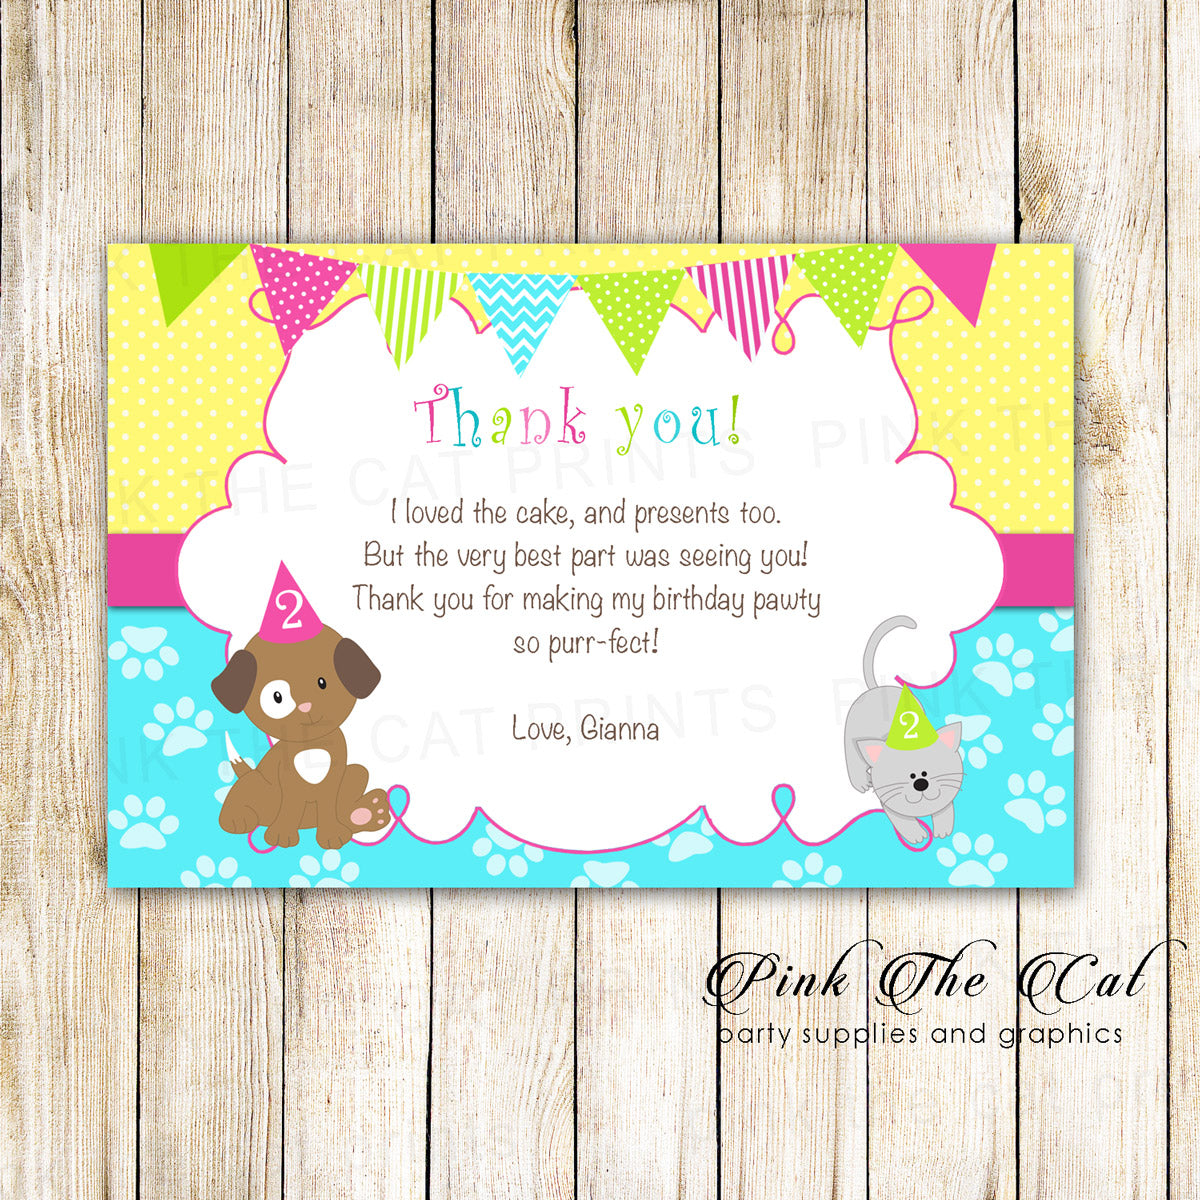 photo regarding Printable Thank You Cards for Kids called Pet dog kitten thank oneself card young children lady birthday printable